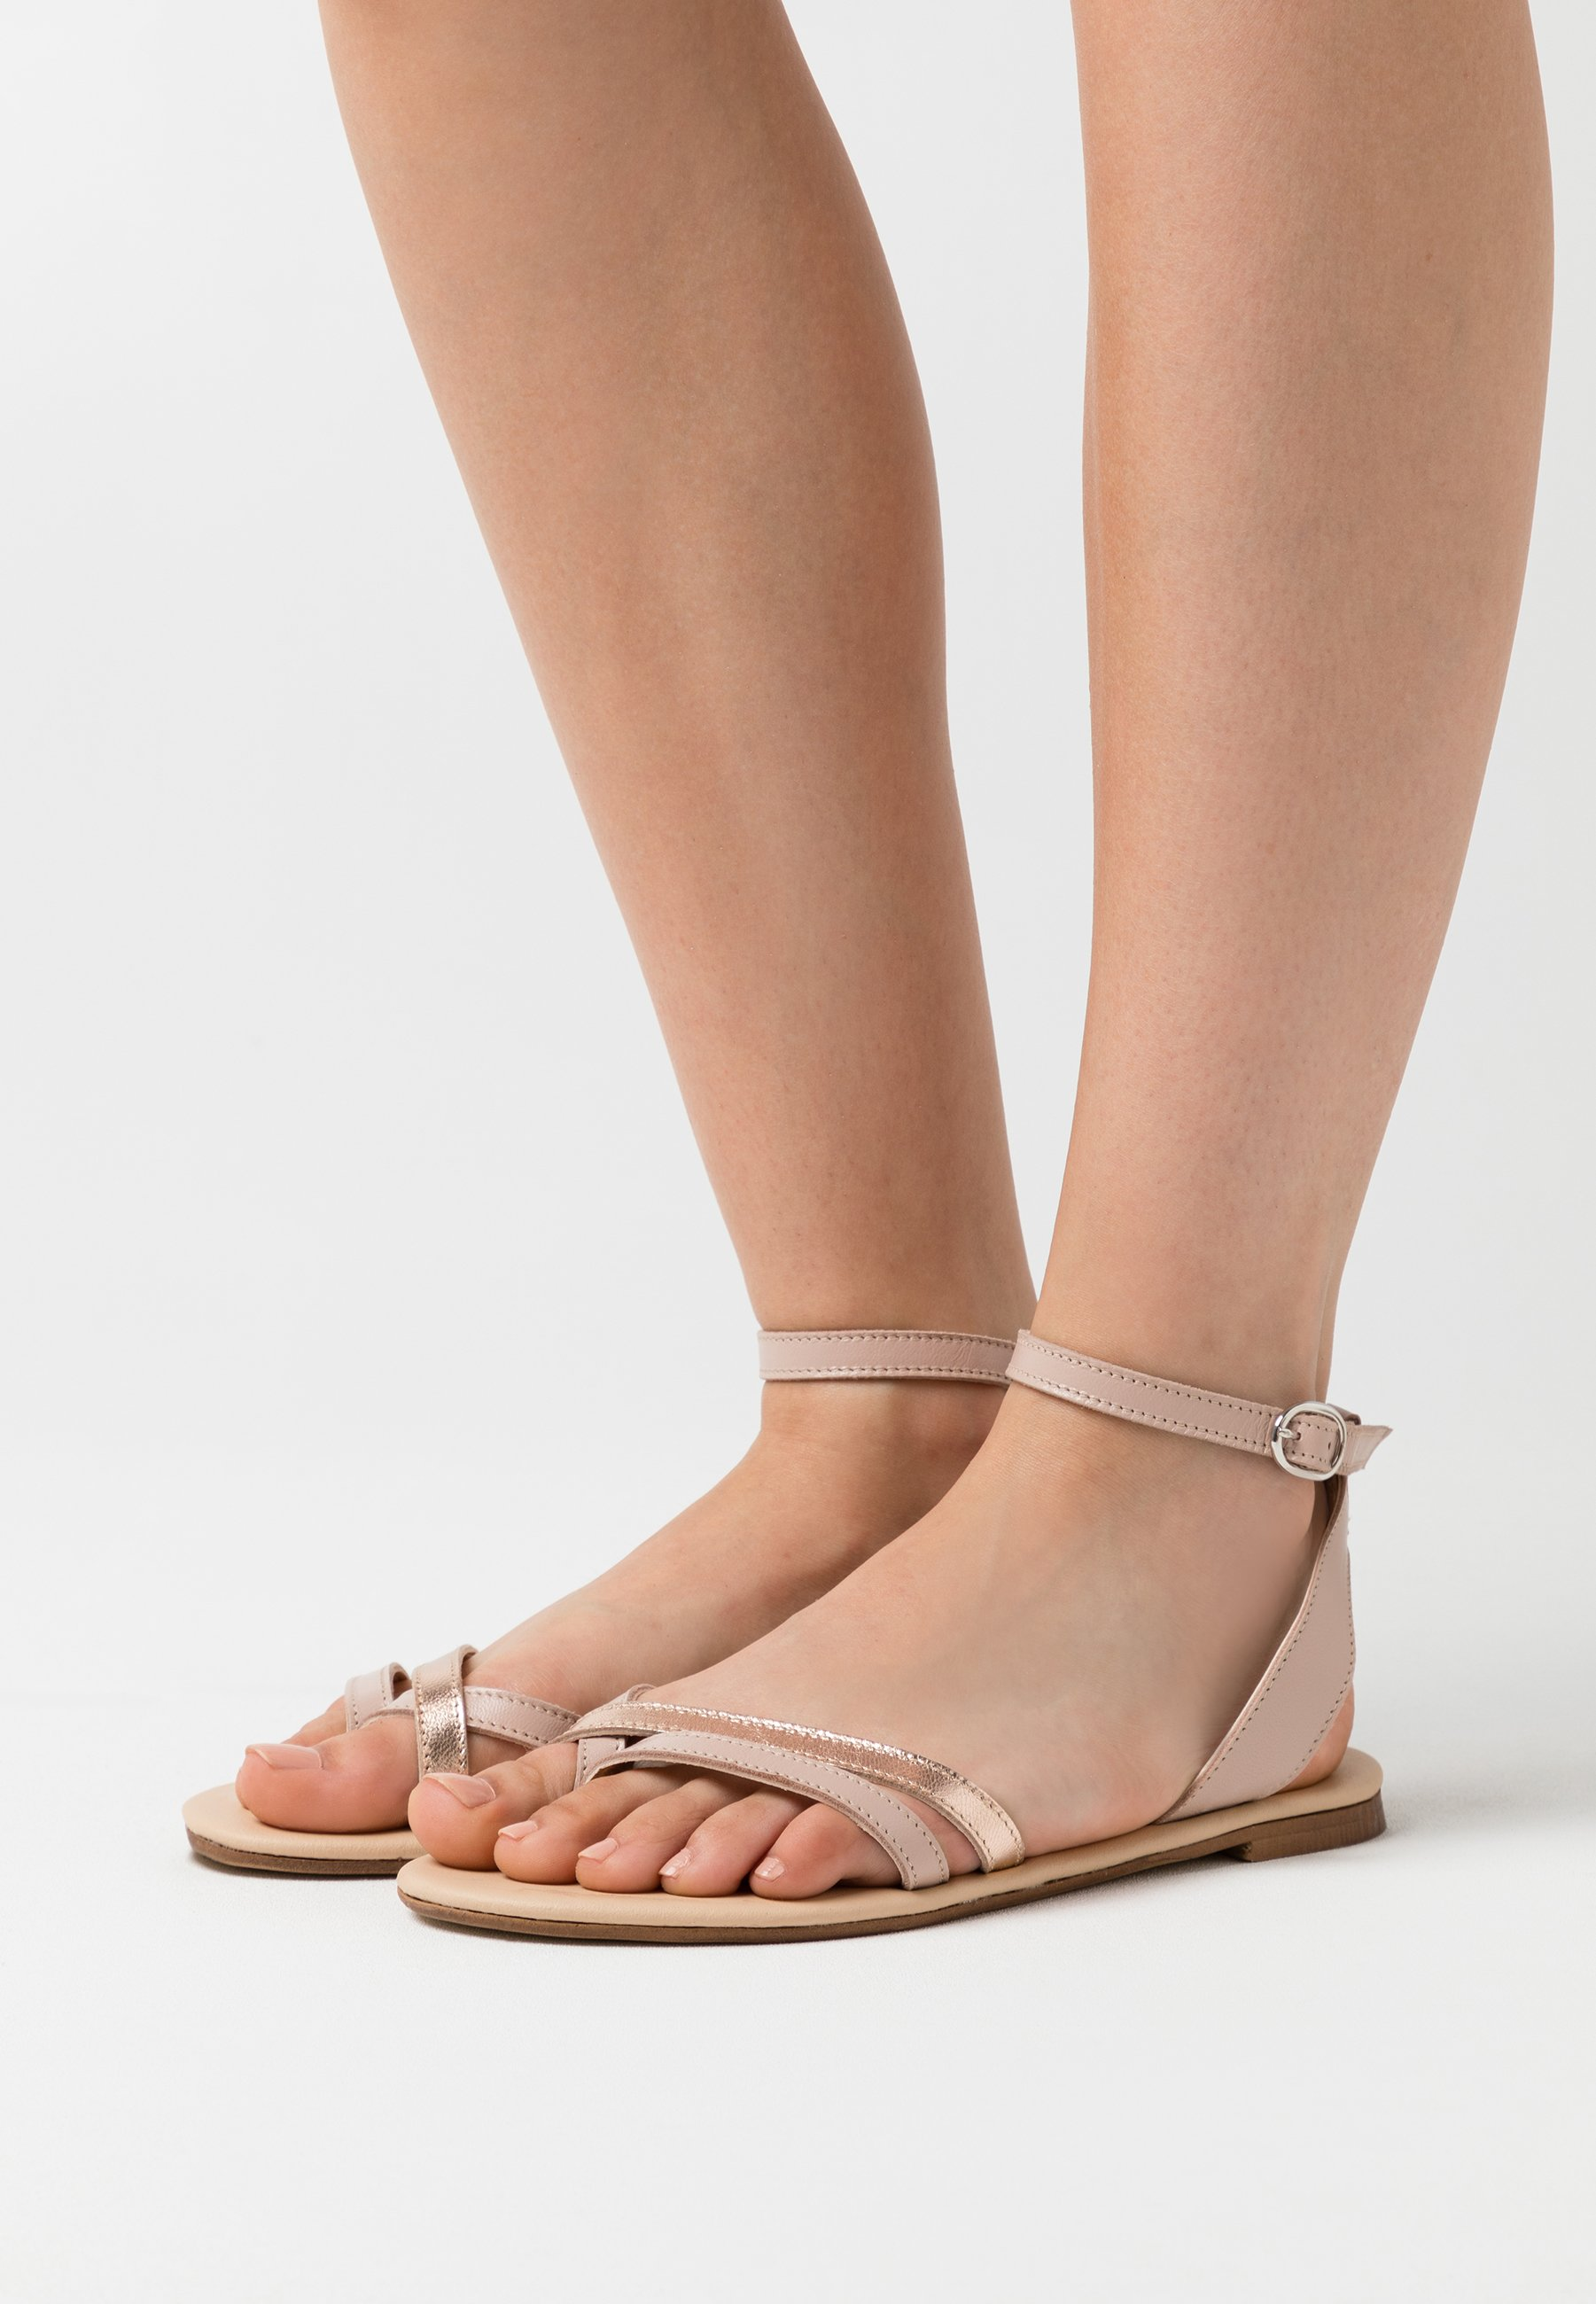 Anna Field LEATHER - Tongs - nude/rose gold - Sandales & Nu-pieds femme Limité